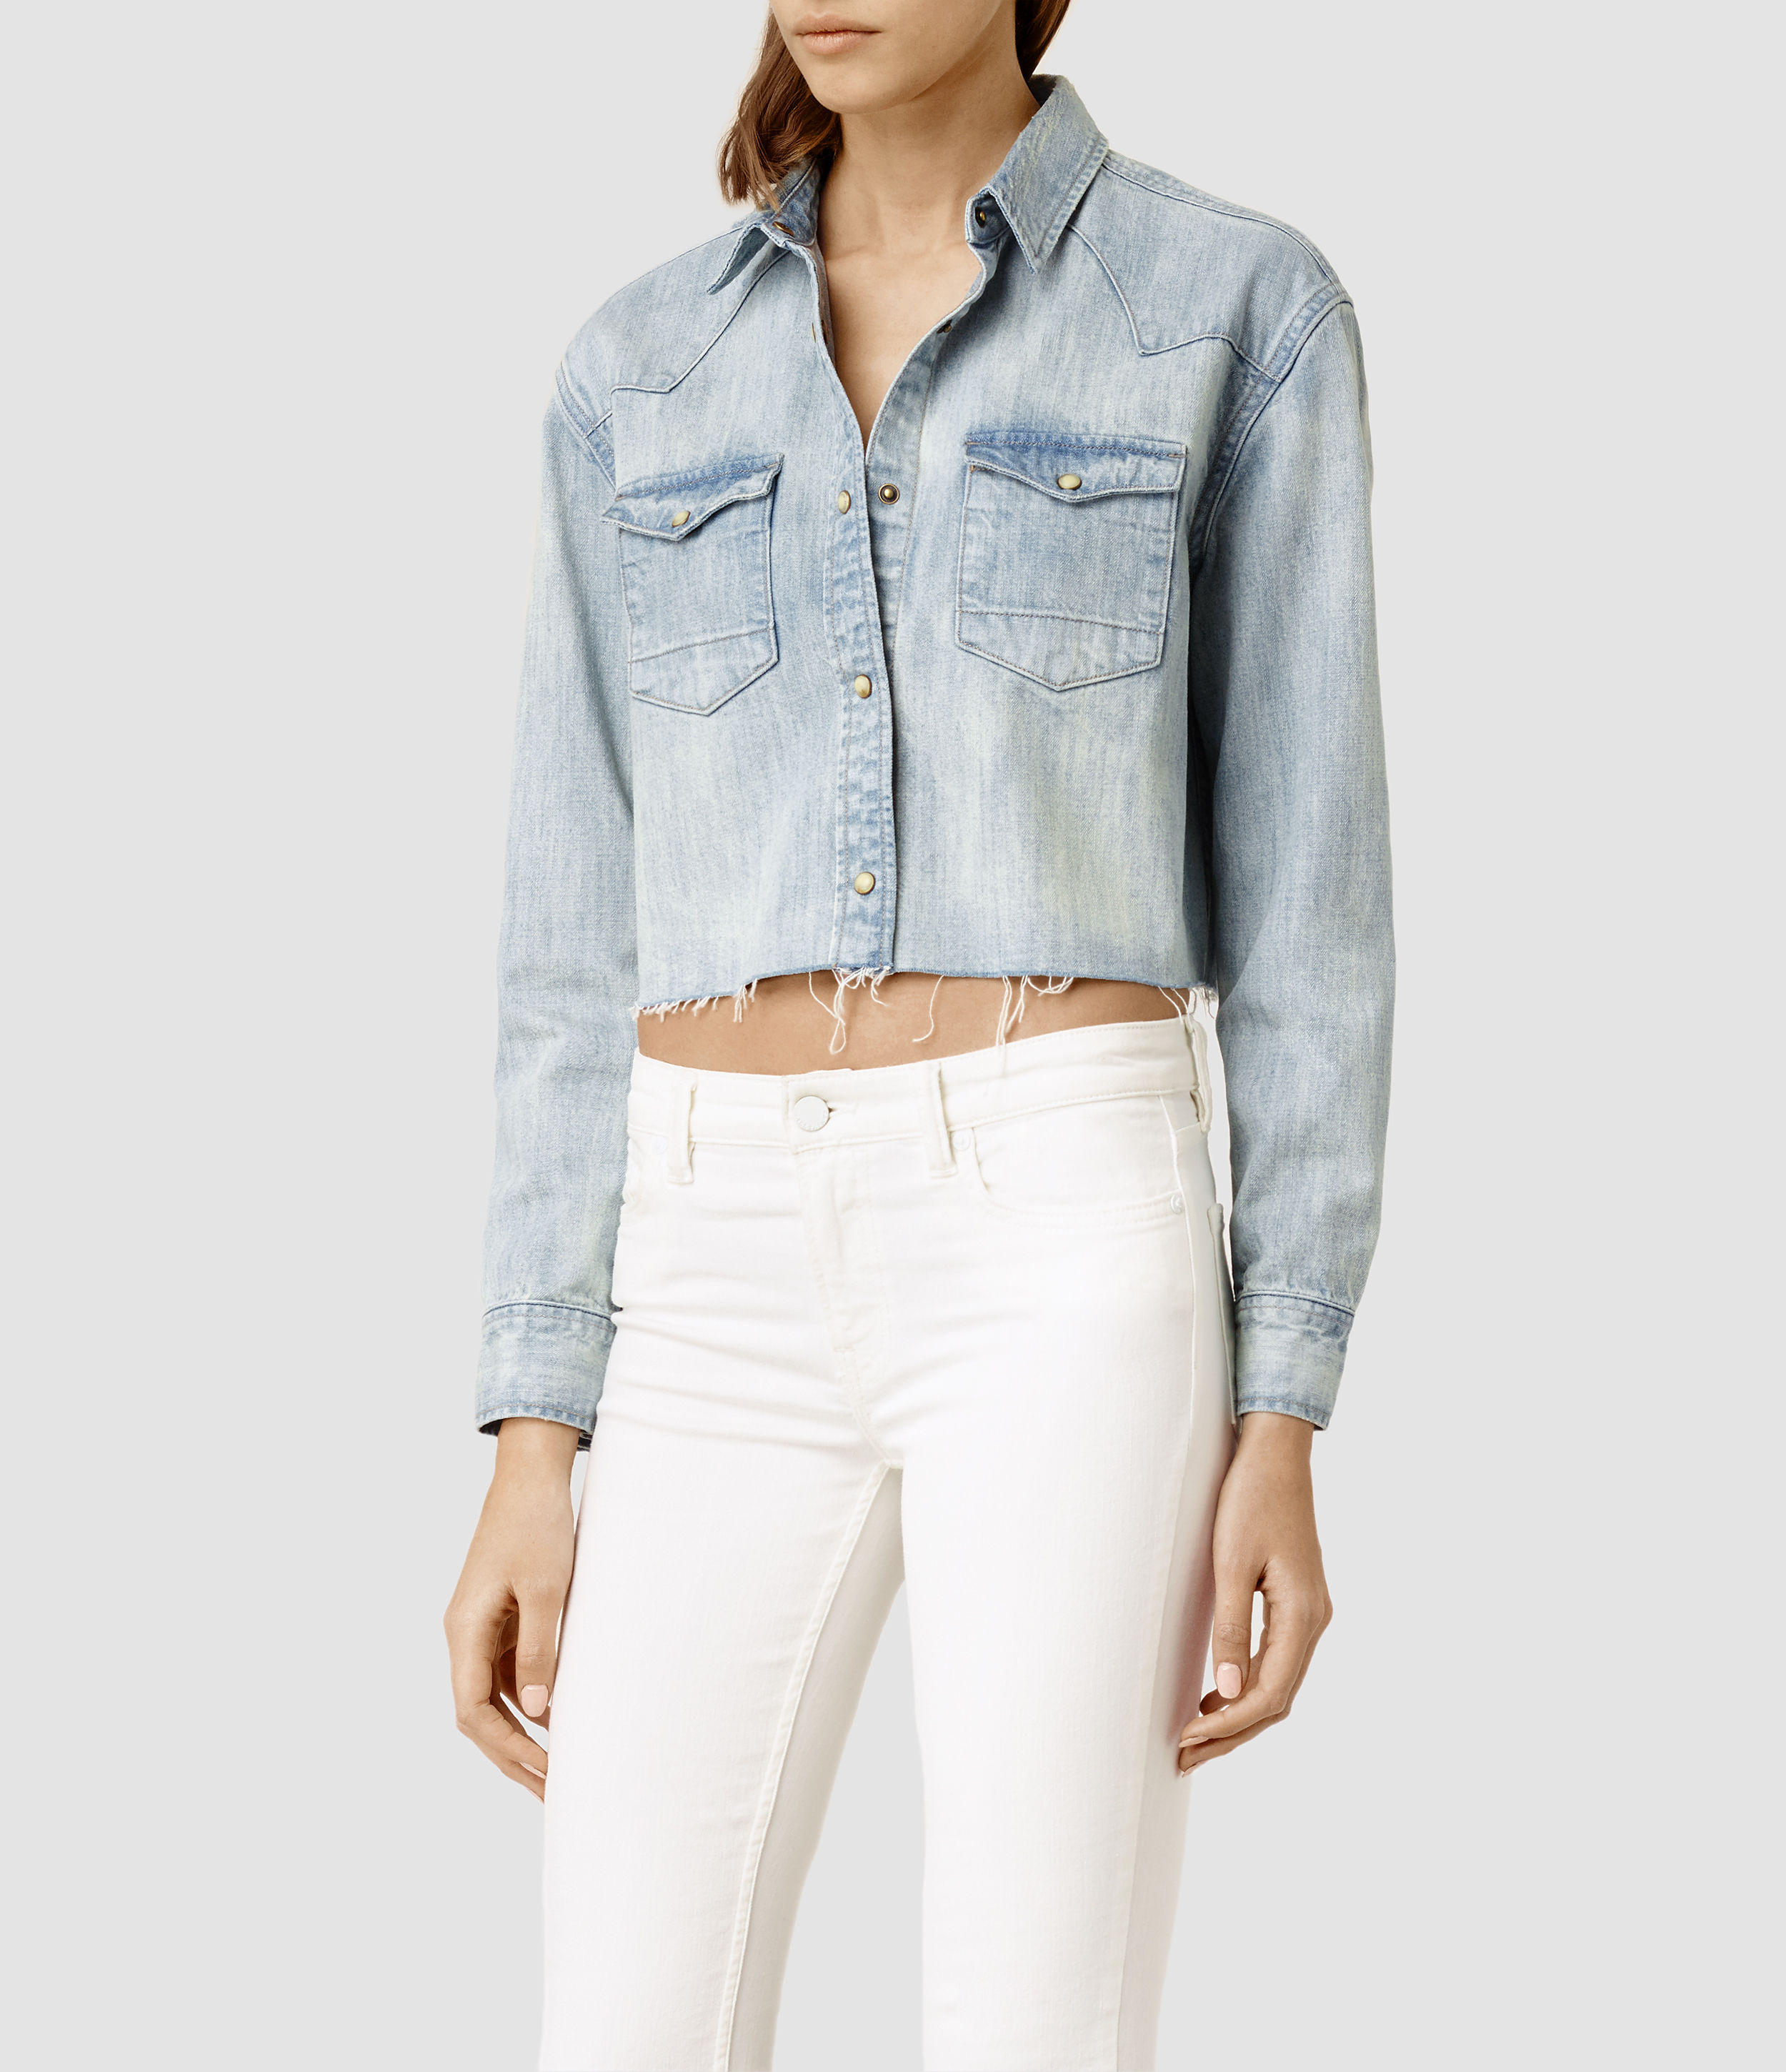 c2928c4435 Lyst - AllSaints Cropped Cannon Shirt in Blue